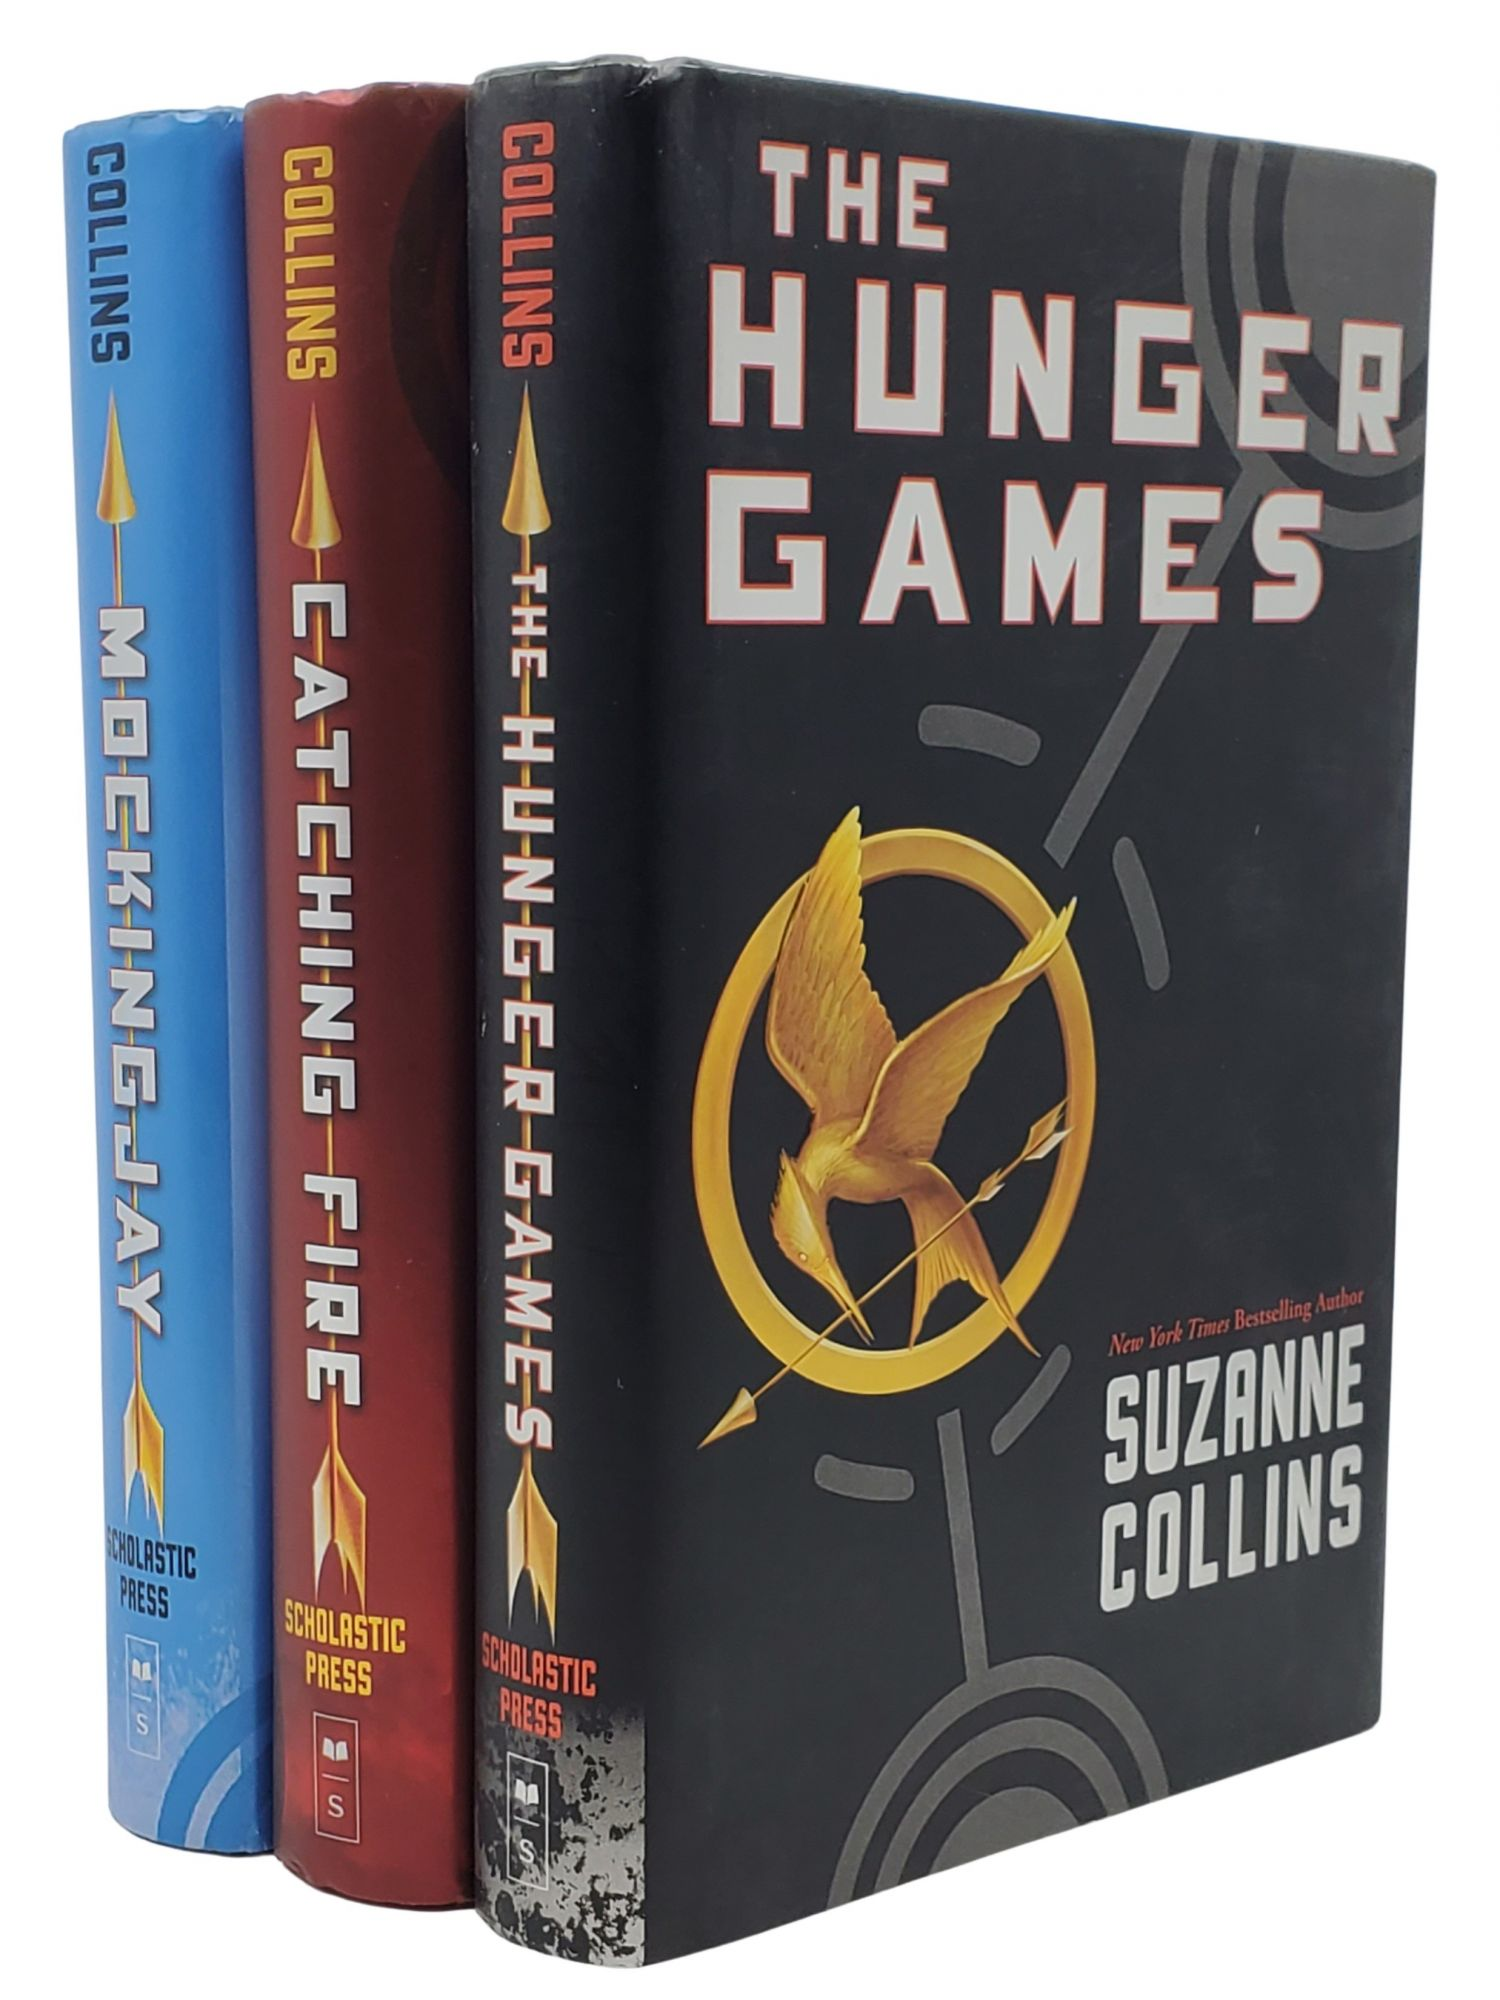 THE HUNGER GAMES TRILOGY: Hunger Games; Catching Firing; Mockingjay. Suzanne Collins.